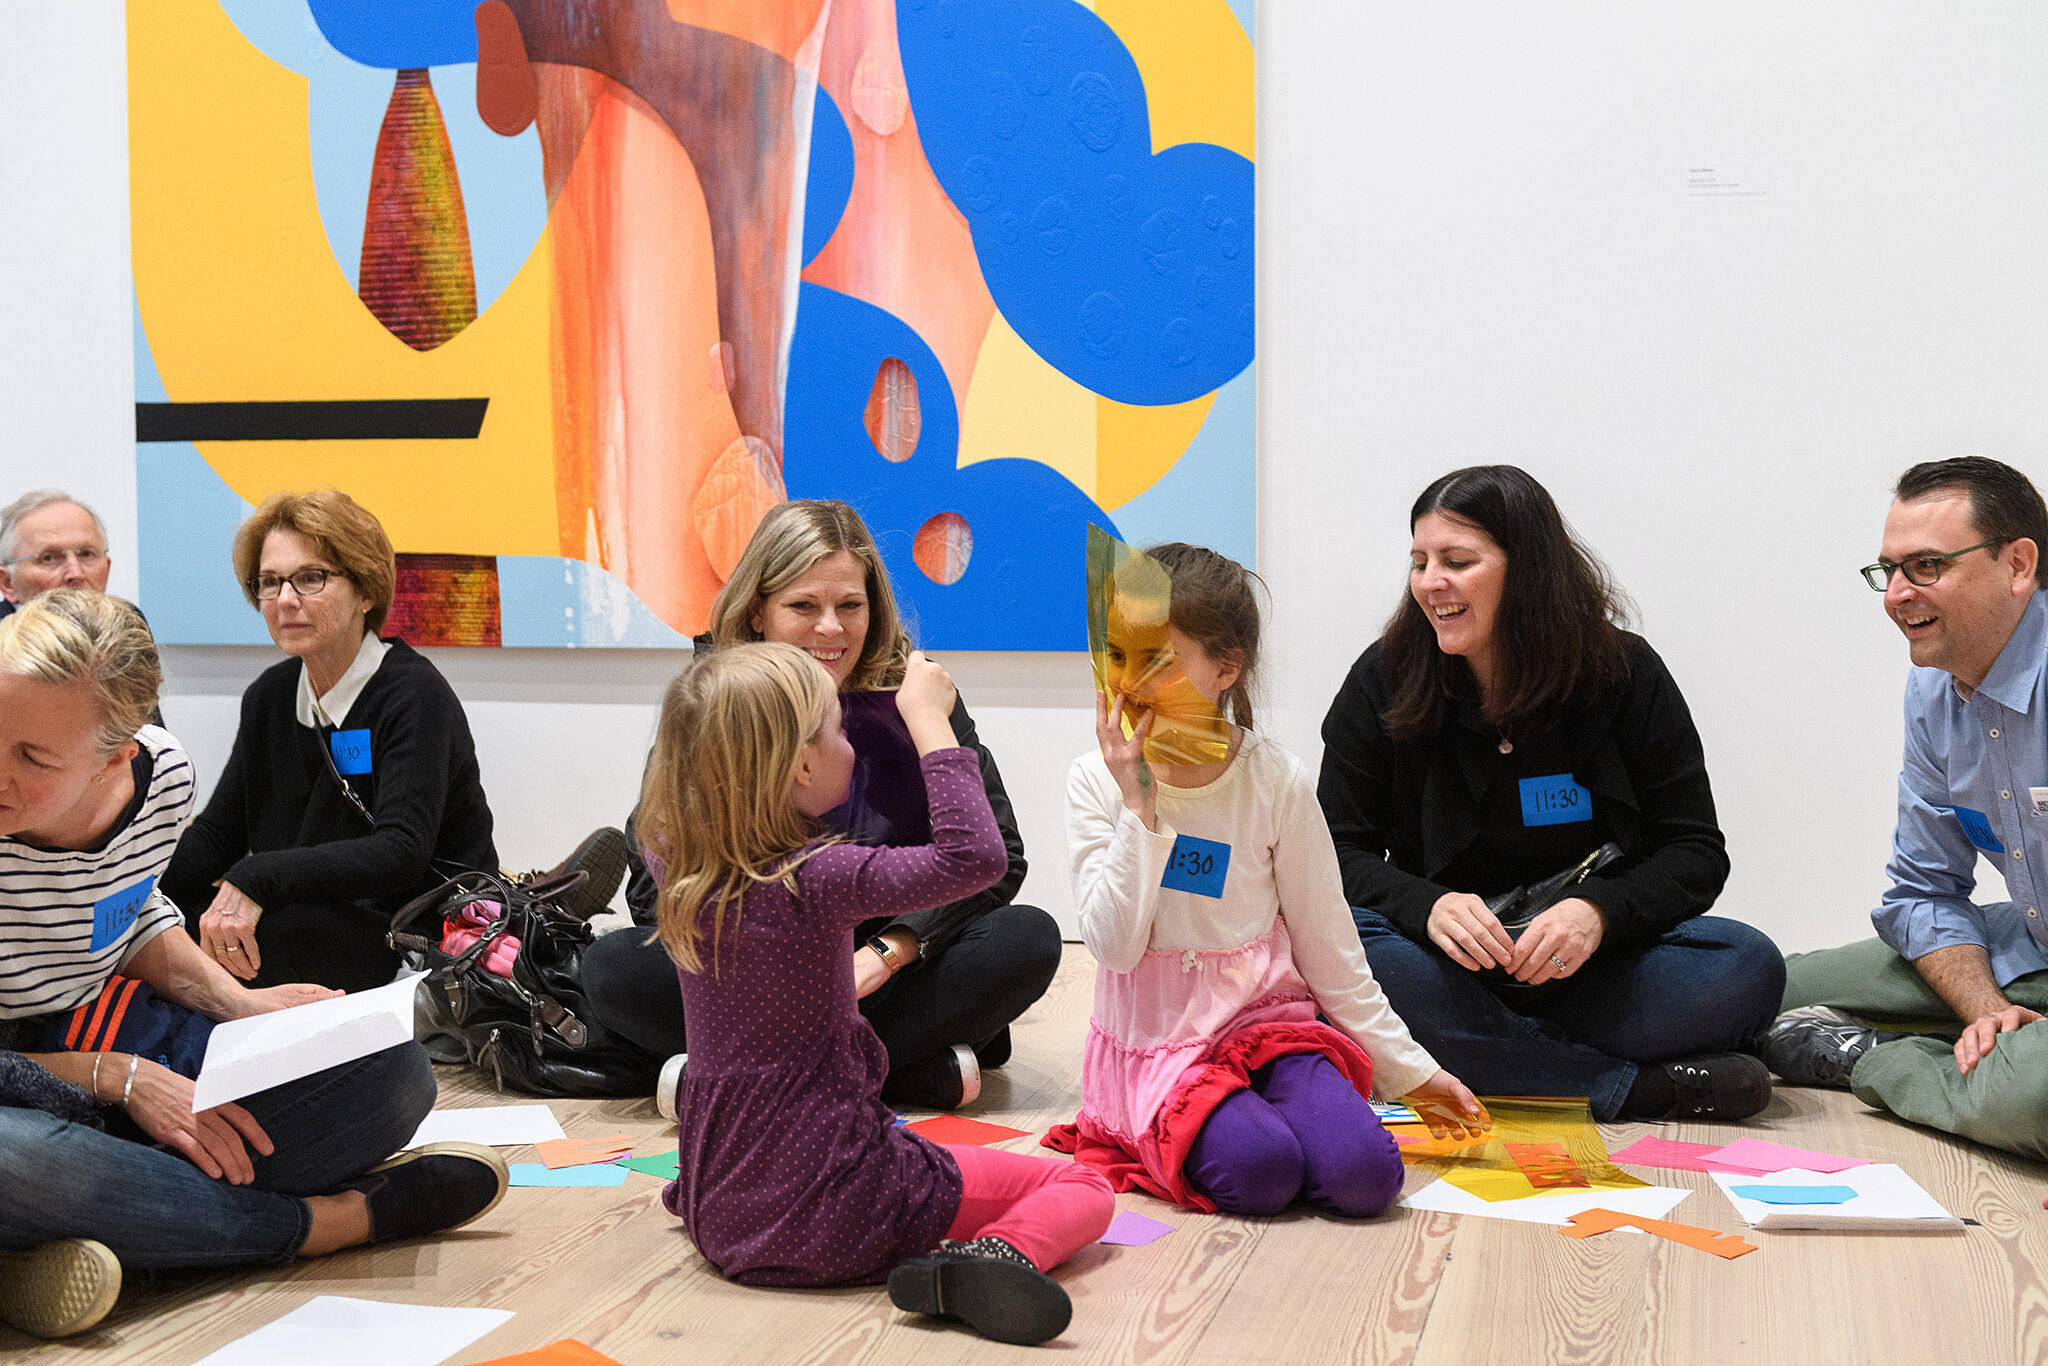 Children and adults sitting on the gallery floor with art materials.